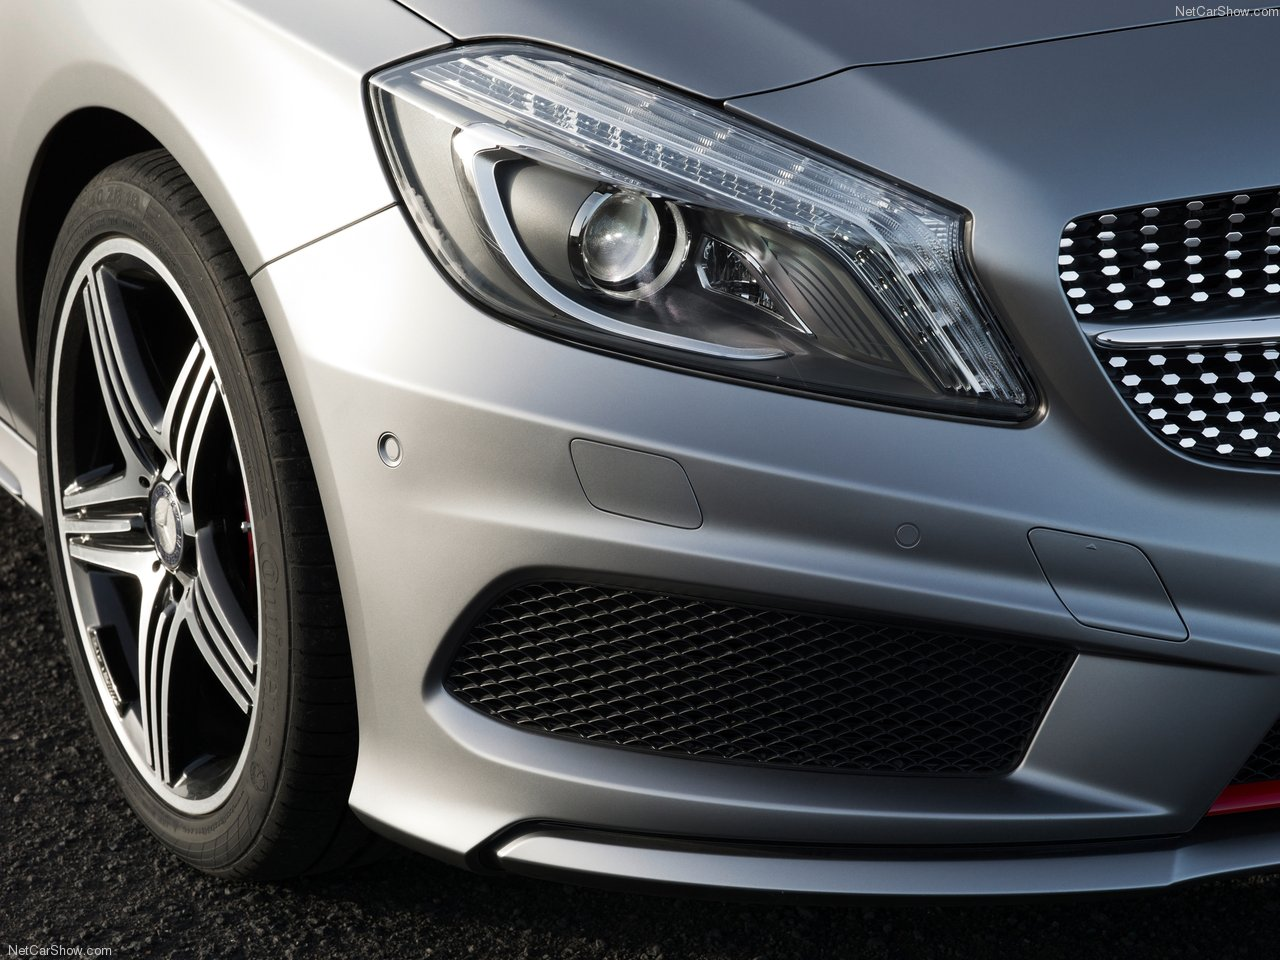 Diamond grille and bigger air intake hint for a250 engineered by amg